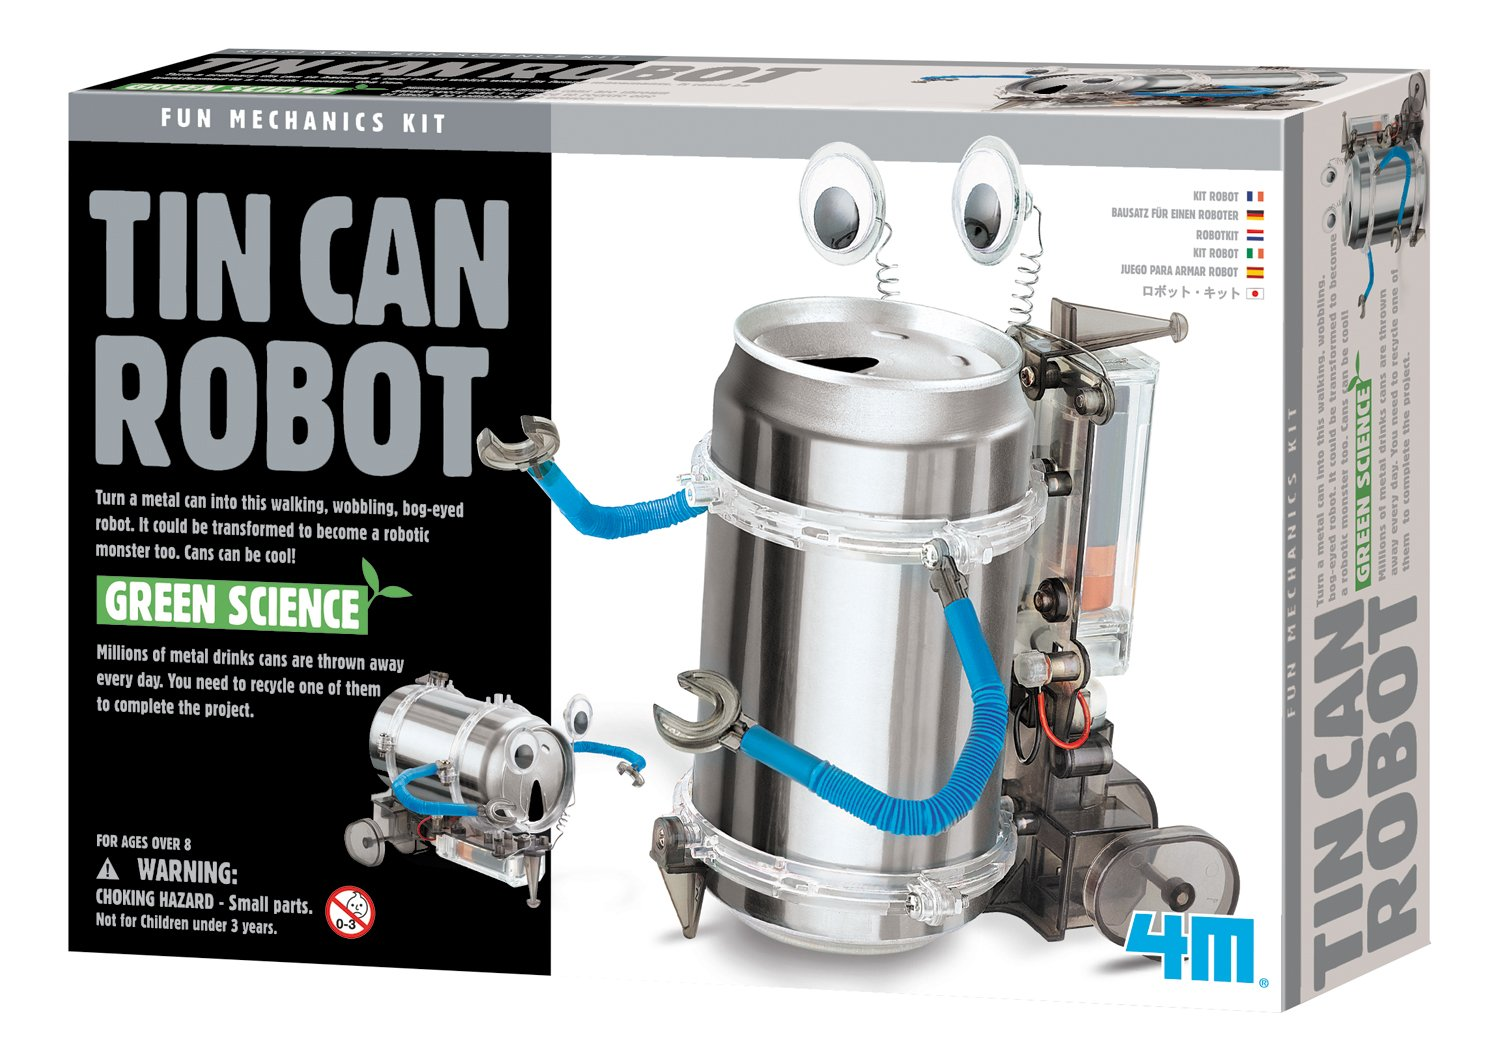 4m Tin Can Robot Toys Games Short Circuit Project Reuses Unwanted Kitchen Appliances Images